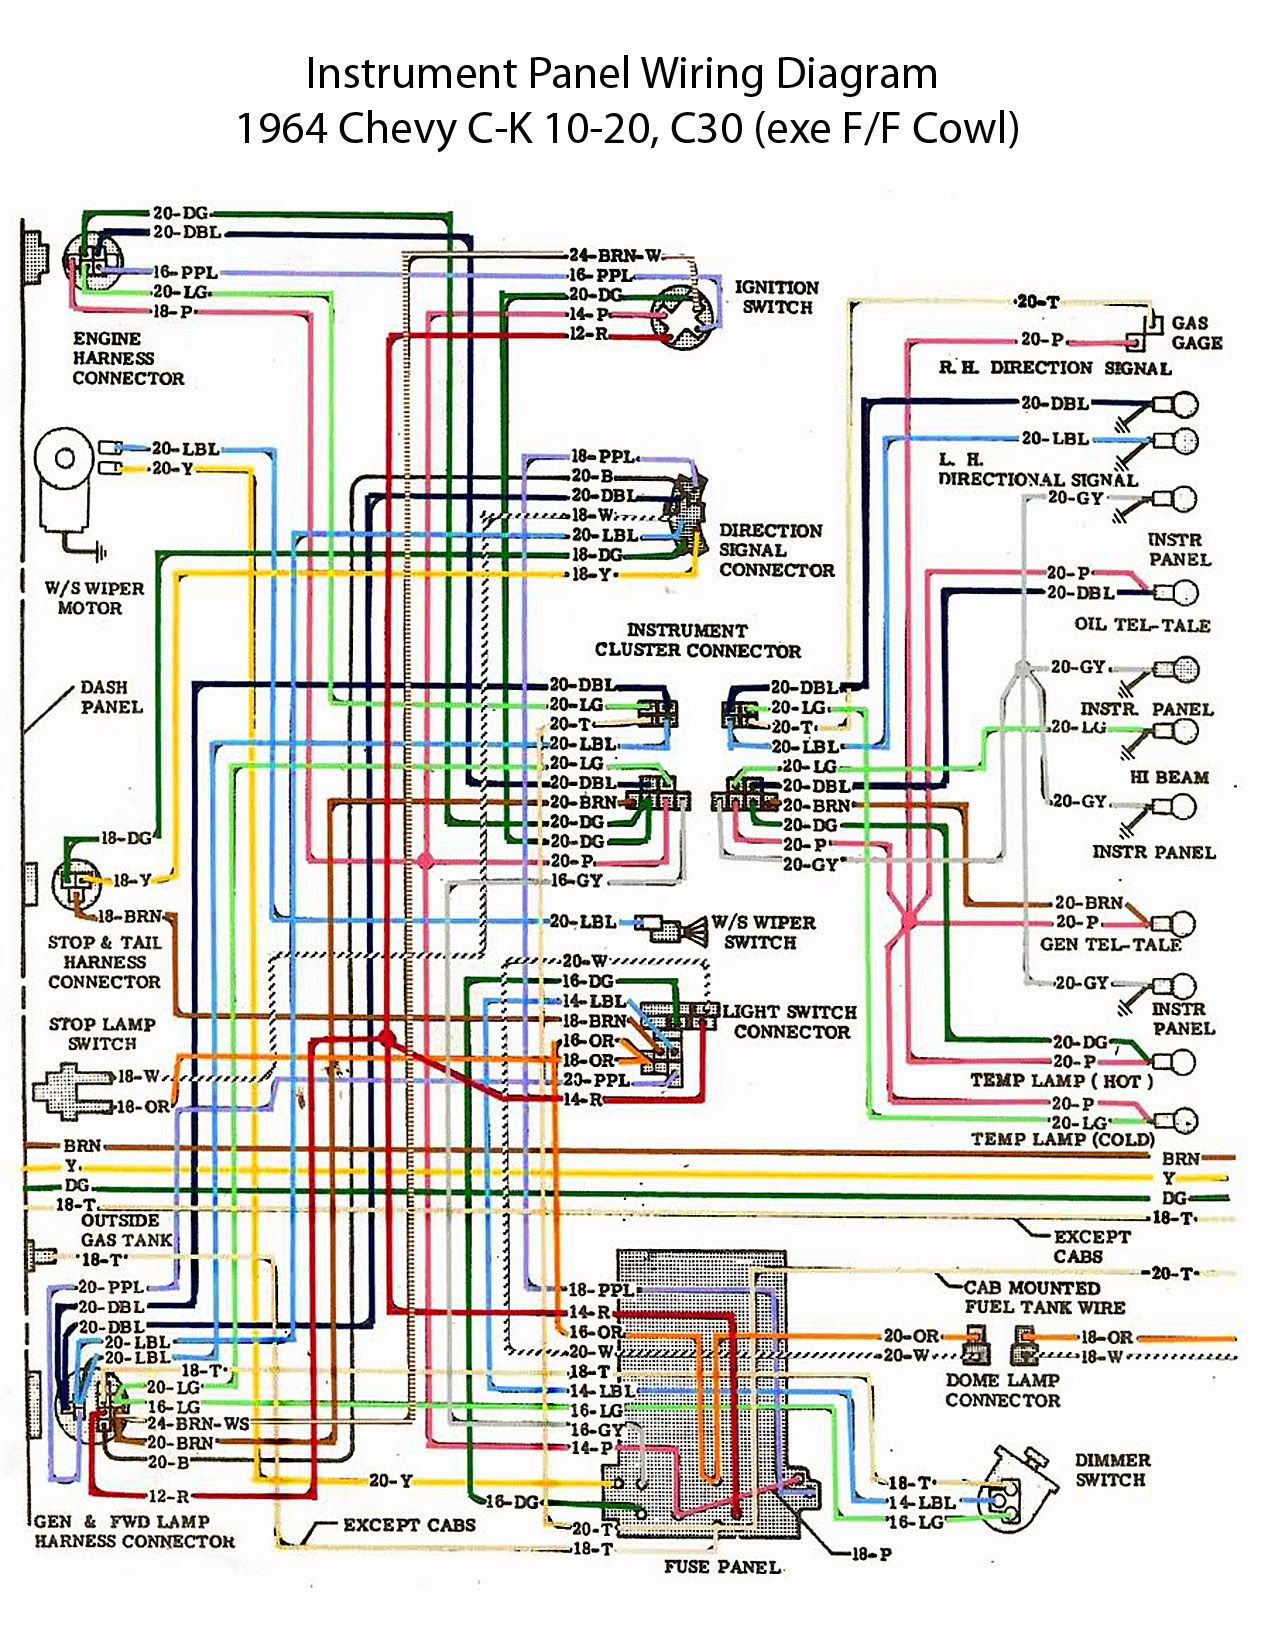 Wilson Auto Electric Wiring Diagrams - WIRE Data • on simple electric motor diagram, simple home electrical wire diagrams, home circuit diagram, simple car diagram, simple engine diagram, simple diagram of a house, simple computer network diagram, house foundation diagram, simple wiring race car, simple home wiring diagrams, simple cell diagram, simple family tree diagram, simple auto body diagram, simple block diagram, car circuit diagram, electrical system diagram, automotive ac system diagram, simple auto lighting diagram,